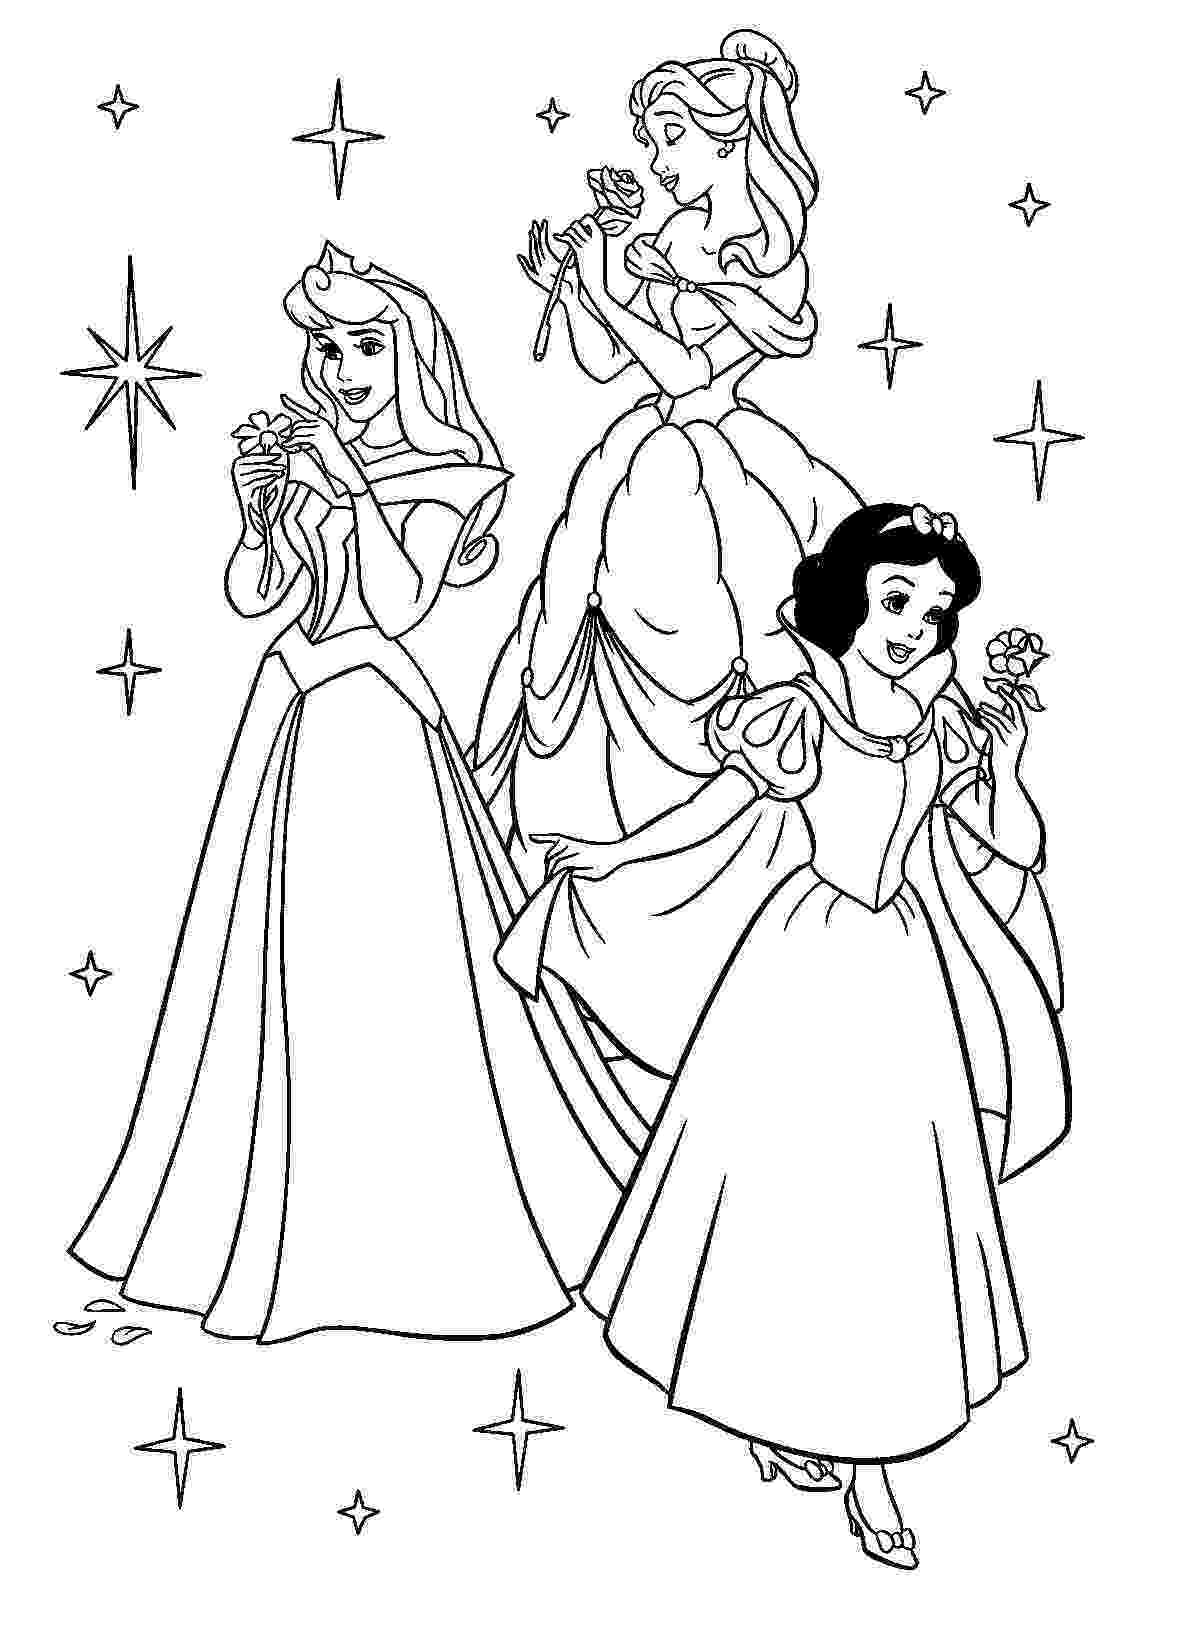 disney coloring pages online disney princess coloring pages minister coloring coloring disney online pages